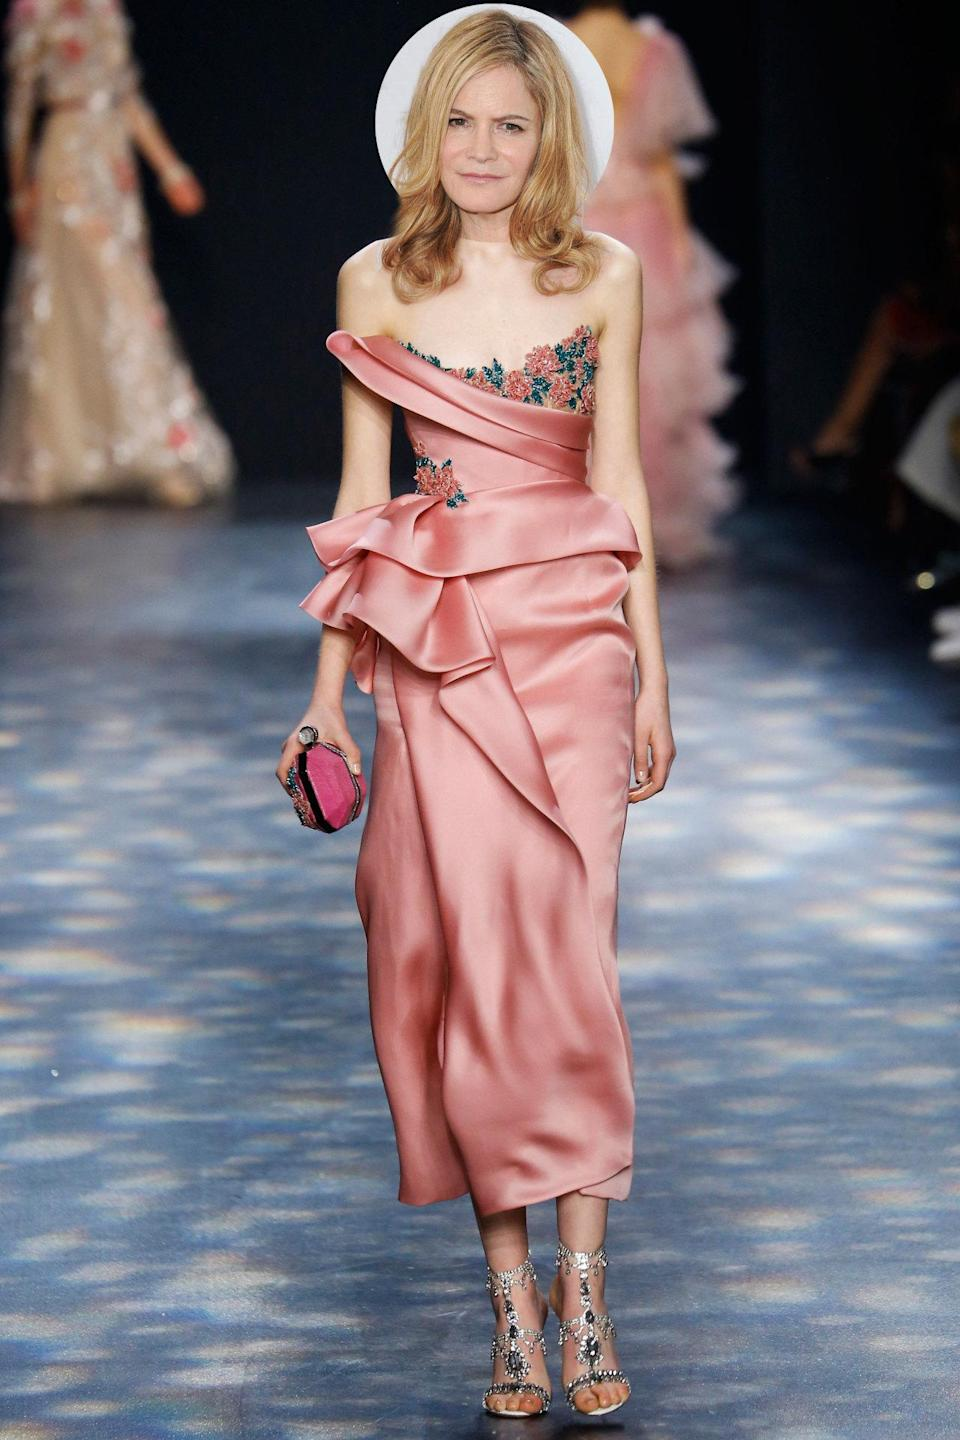 <p>The <i>Hateful Eight</i> actress would look sublime in this showstopping, hot-off-the-runway pink-and-floral frock from Marchesa's fall 2016 collection.</p>